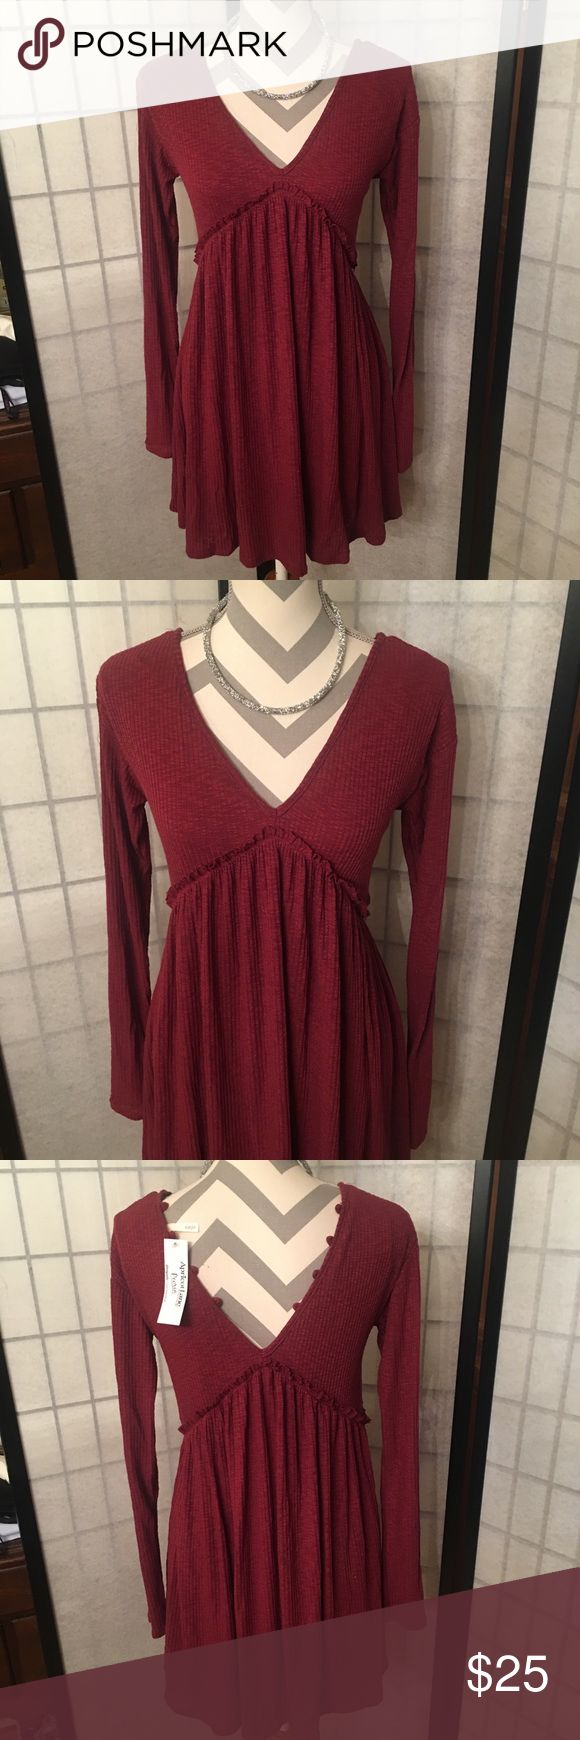 Apricot Lane Boutique Dress NWT Long Sleeve V Neck Angel of mine long sleeve dress from Apricot Lane. New with tags. Size small. Burgundy color. Paid $48.  Follow me to see new items, I'm happy to bundle :)   Clean, non smoking home. Sage Dresses Long Sleeve